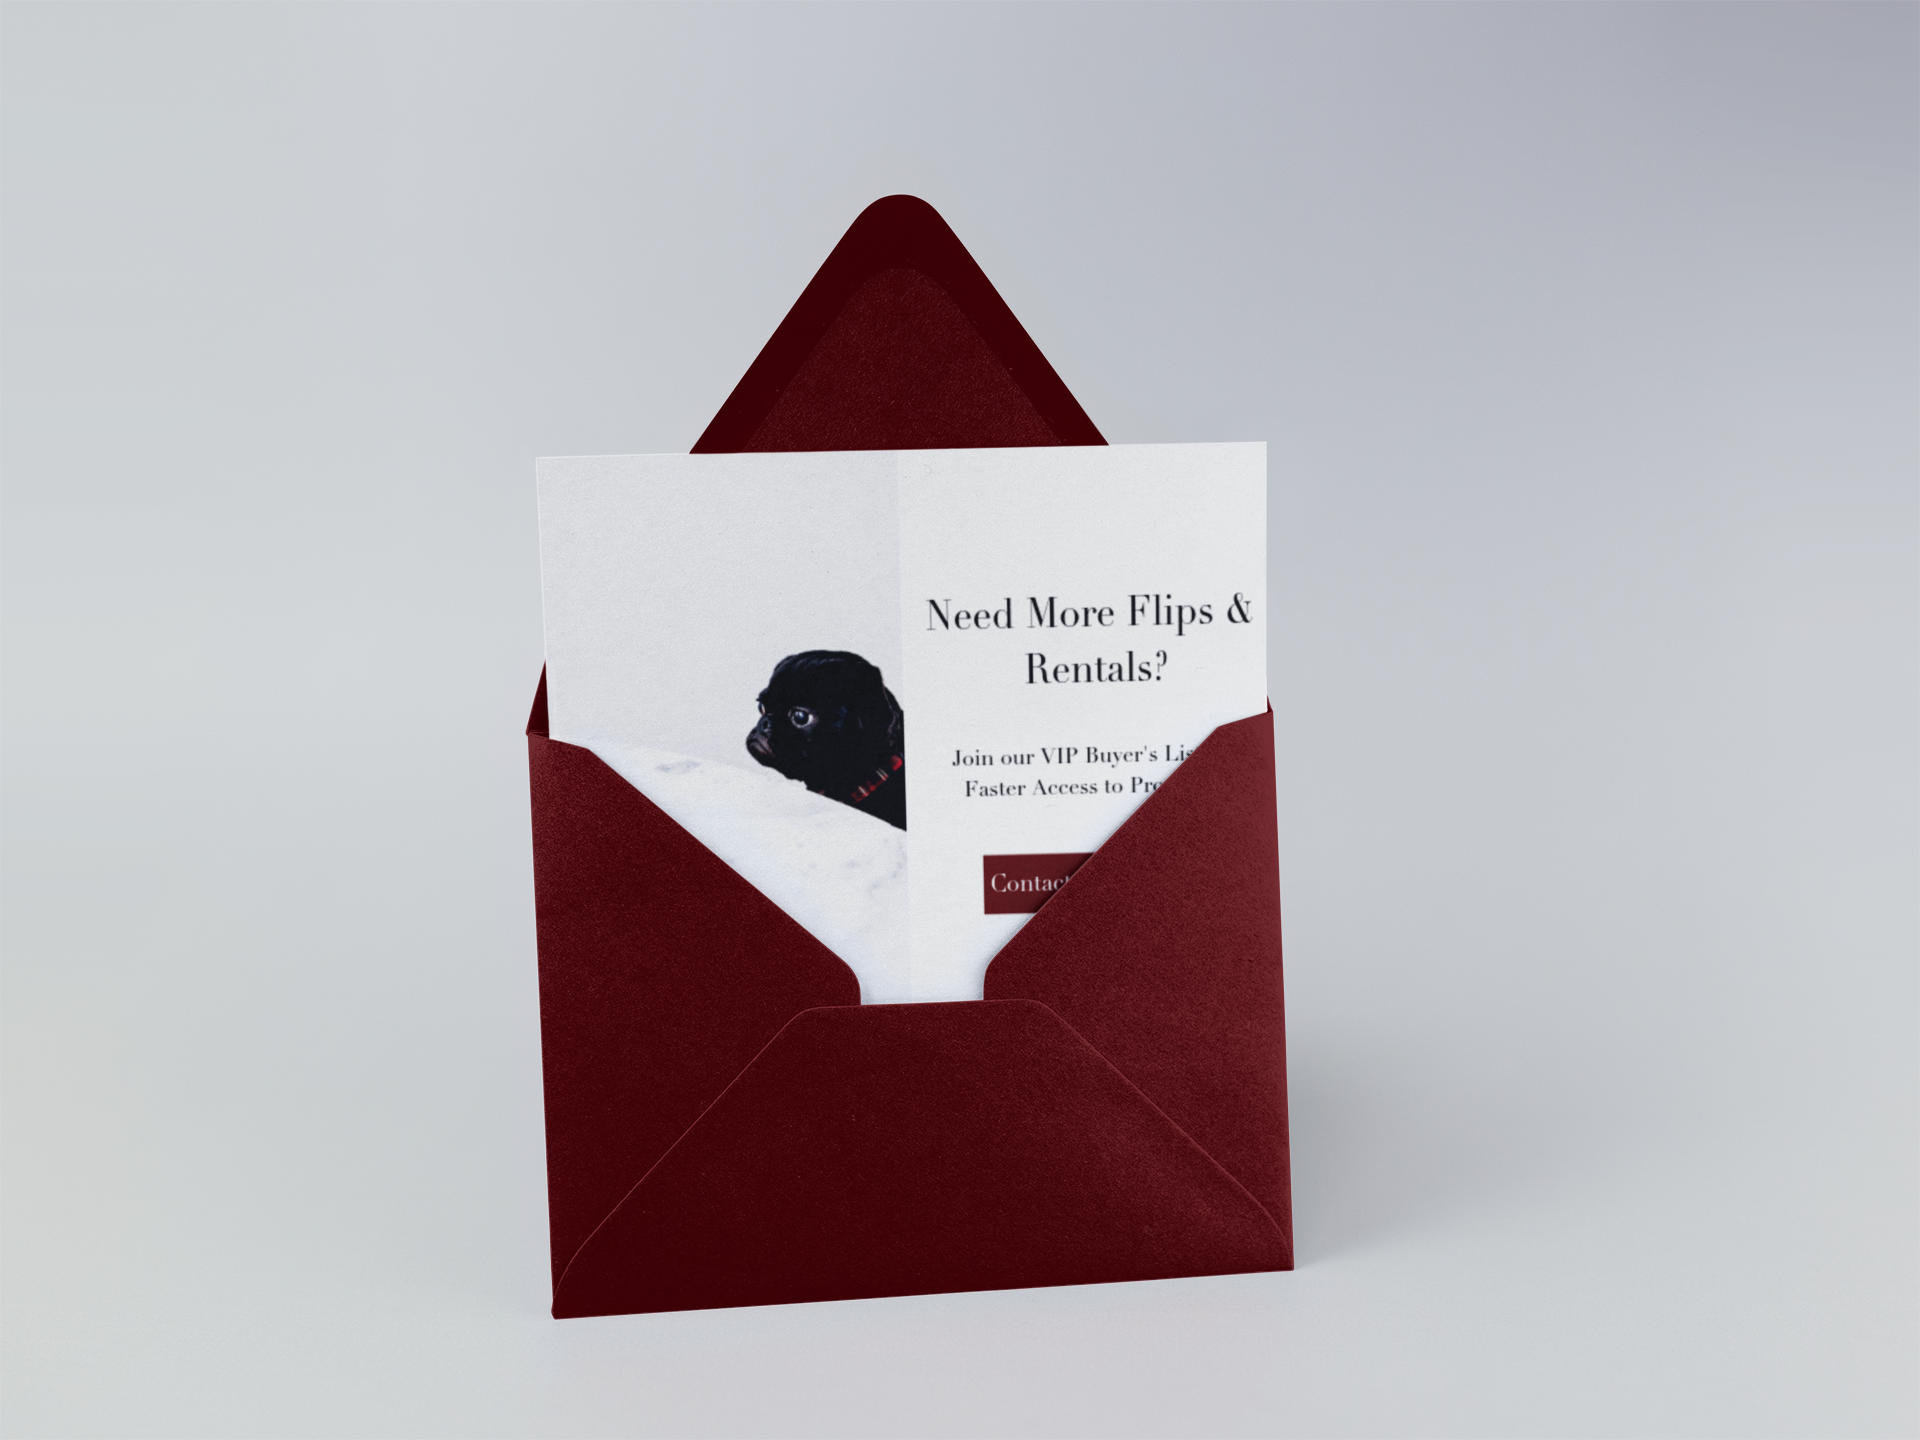 invitation-card-in-an-envelope-template-standing-on-a-solid-surface-a15086.png